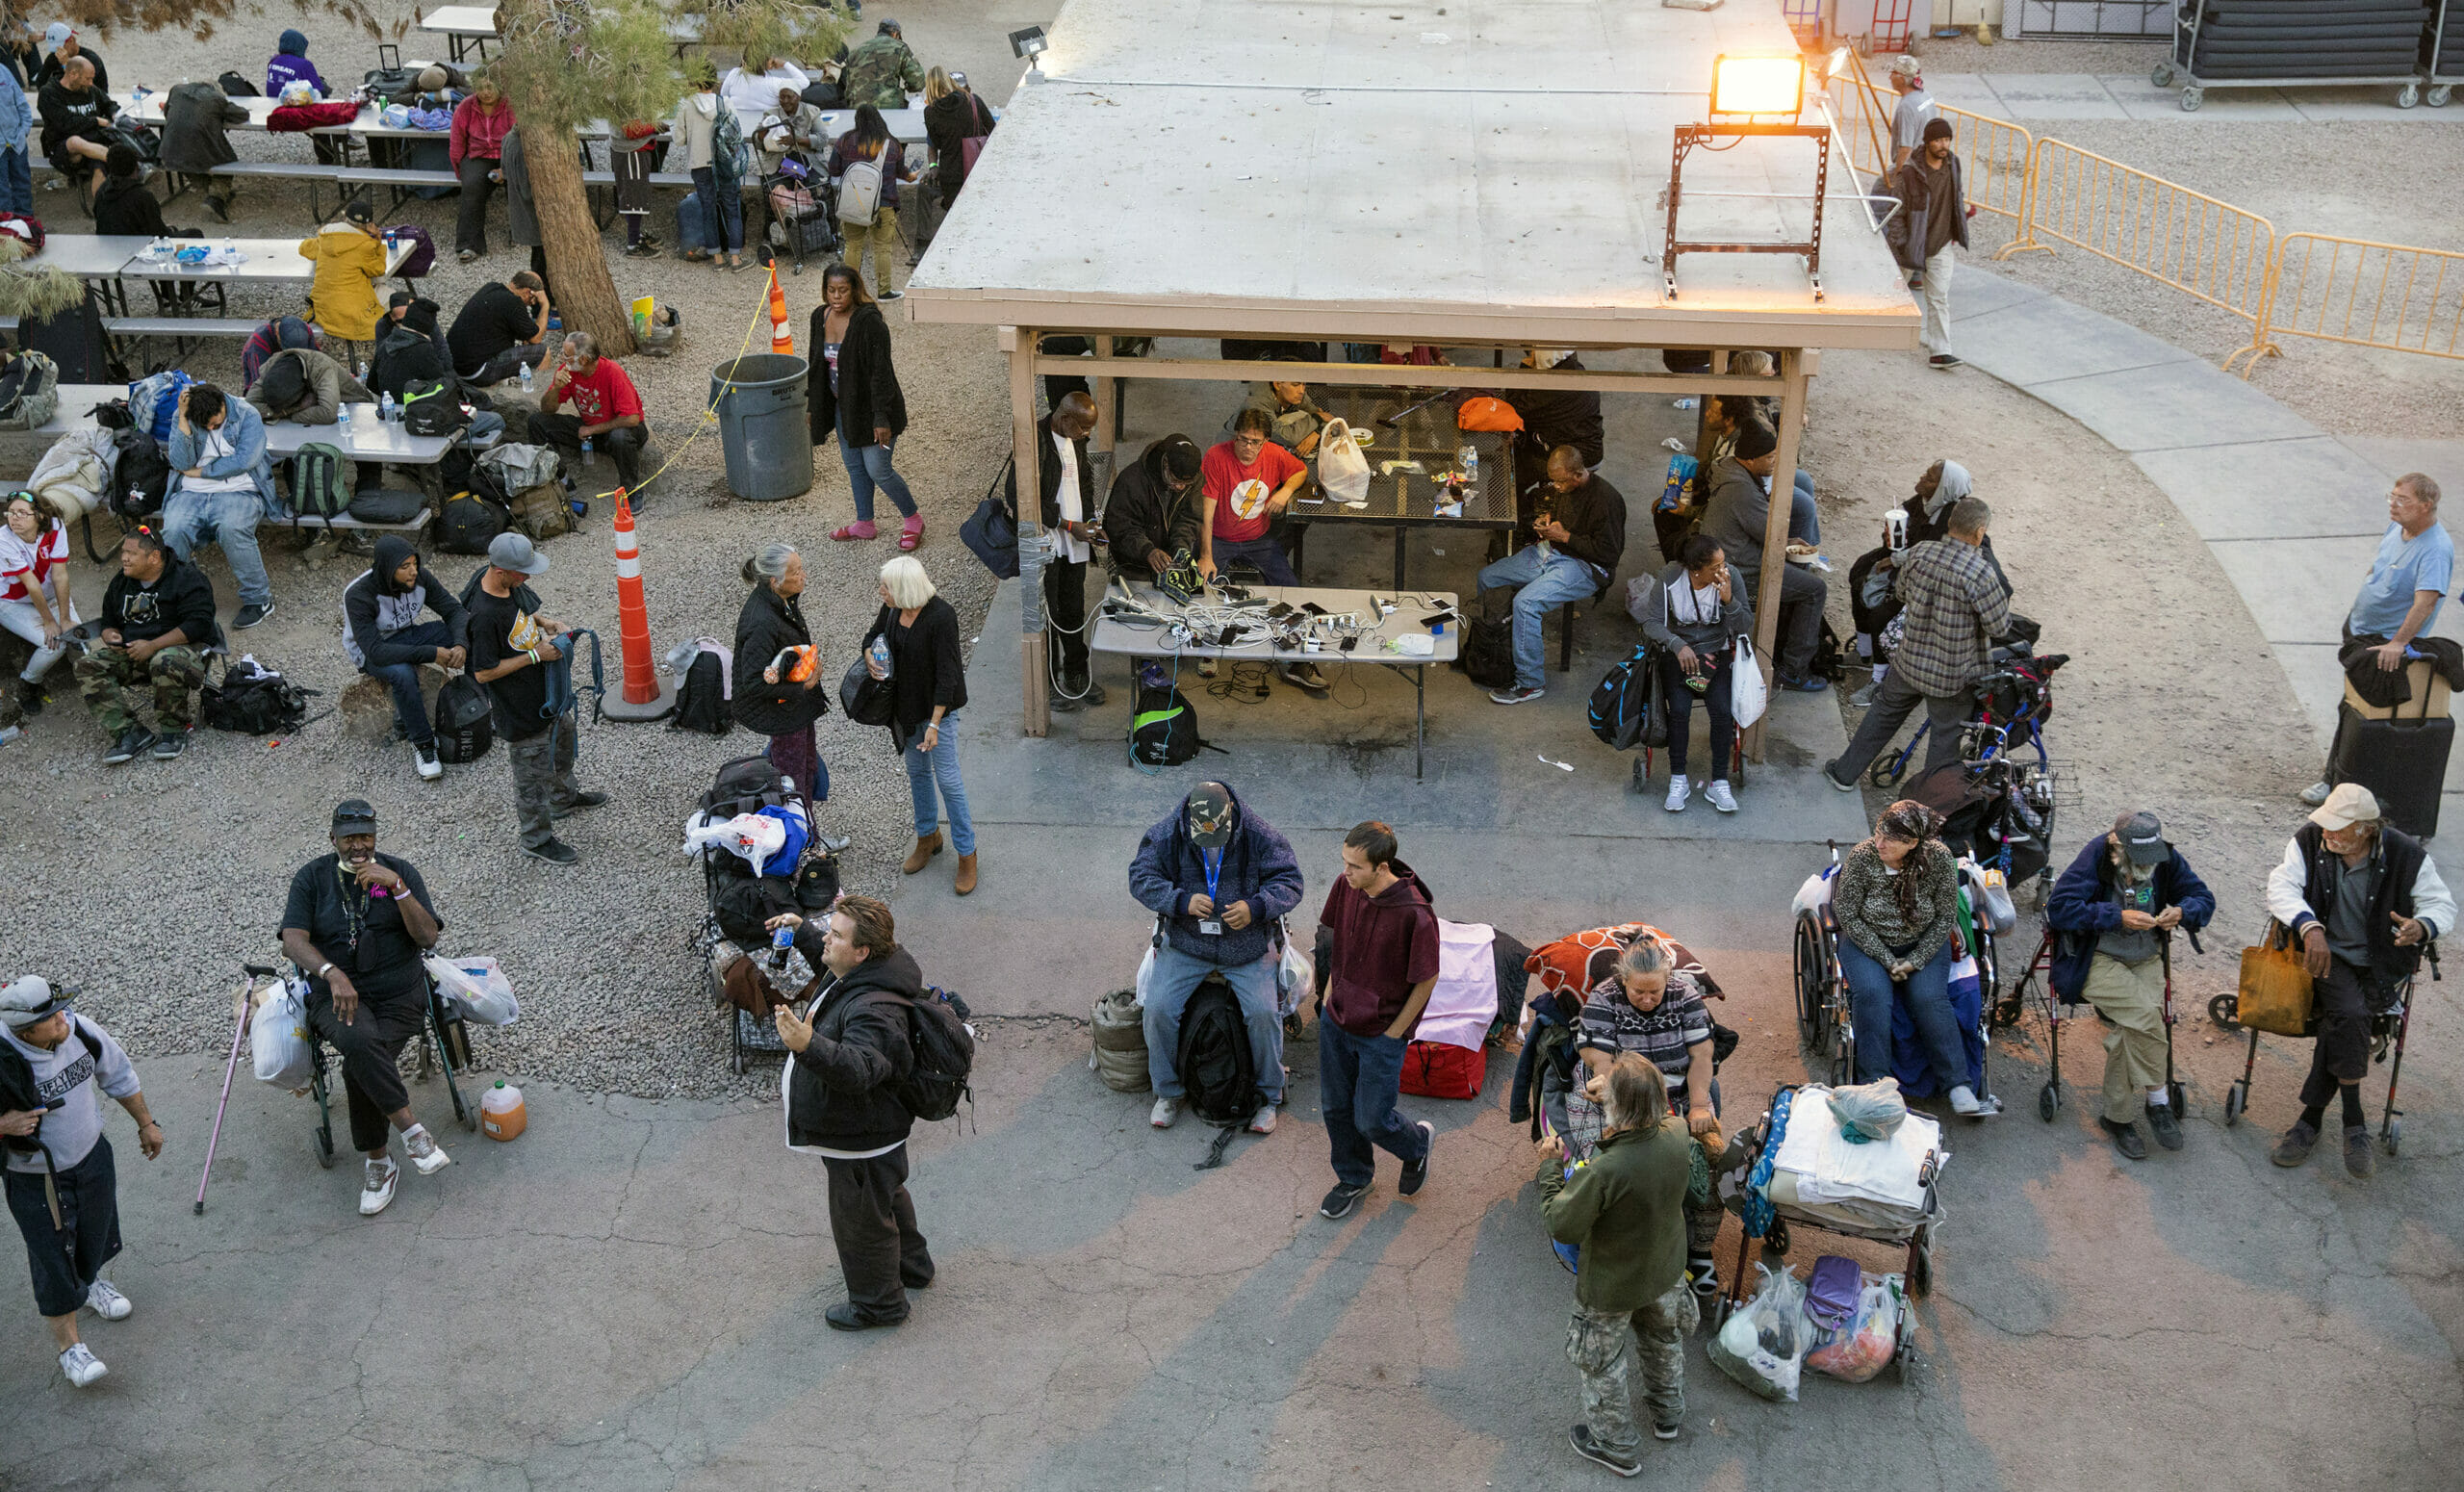 The Courtyard homeless resource center in Las Vegas